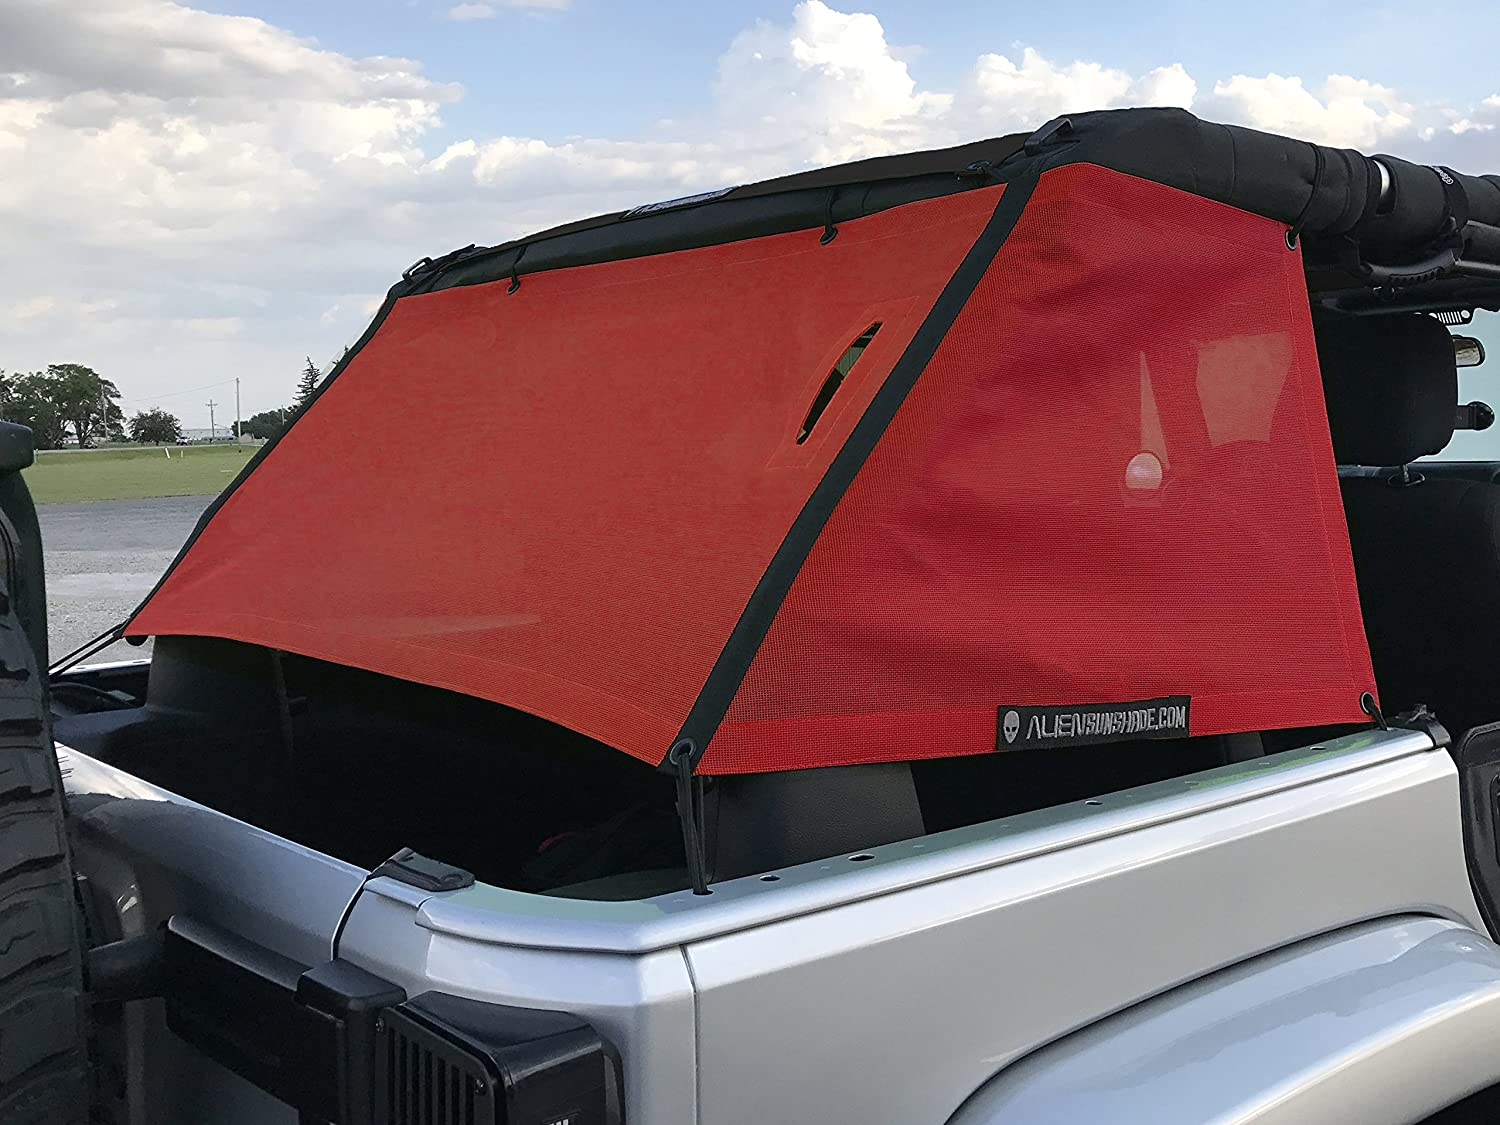 1997-2006 Forest ALIEN SUNSHADE Jeep Wrangler Mesh Cage Side Shades Protect Your Cargo Area and Rear Passengers From Harmful UV Rays for Your TJ